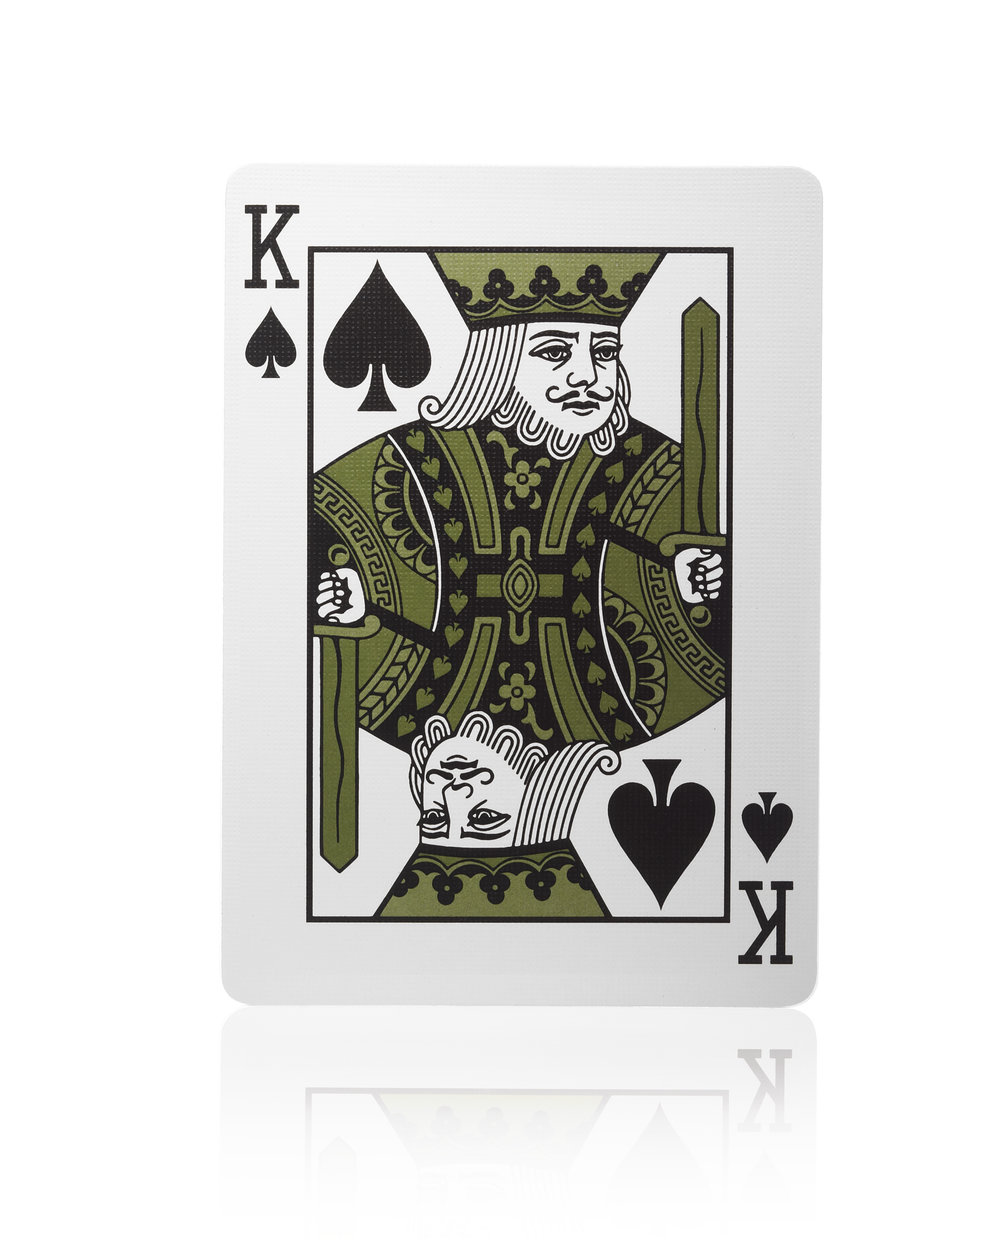 110330-PlayingCards-PlayingCards-003 copy.jpg